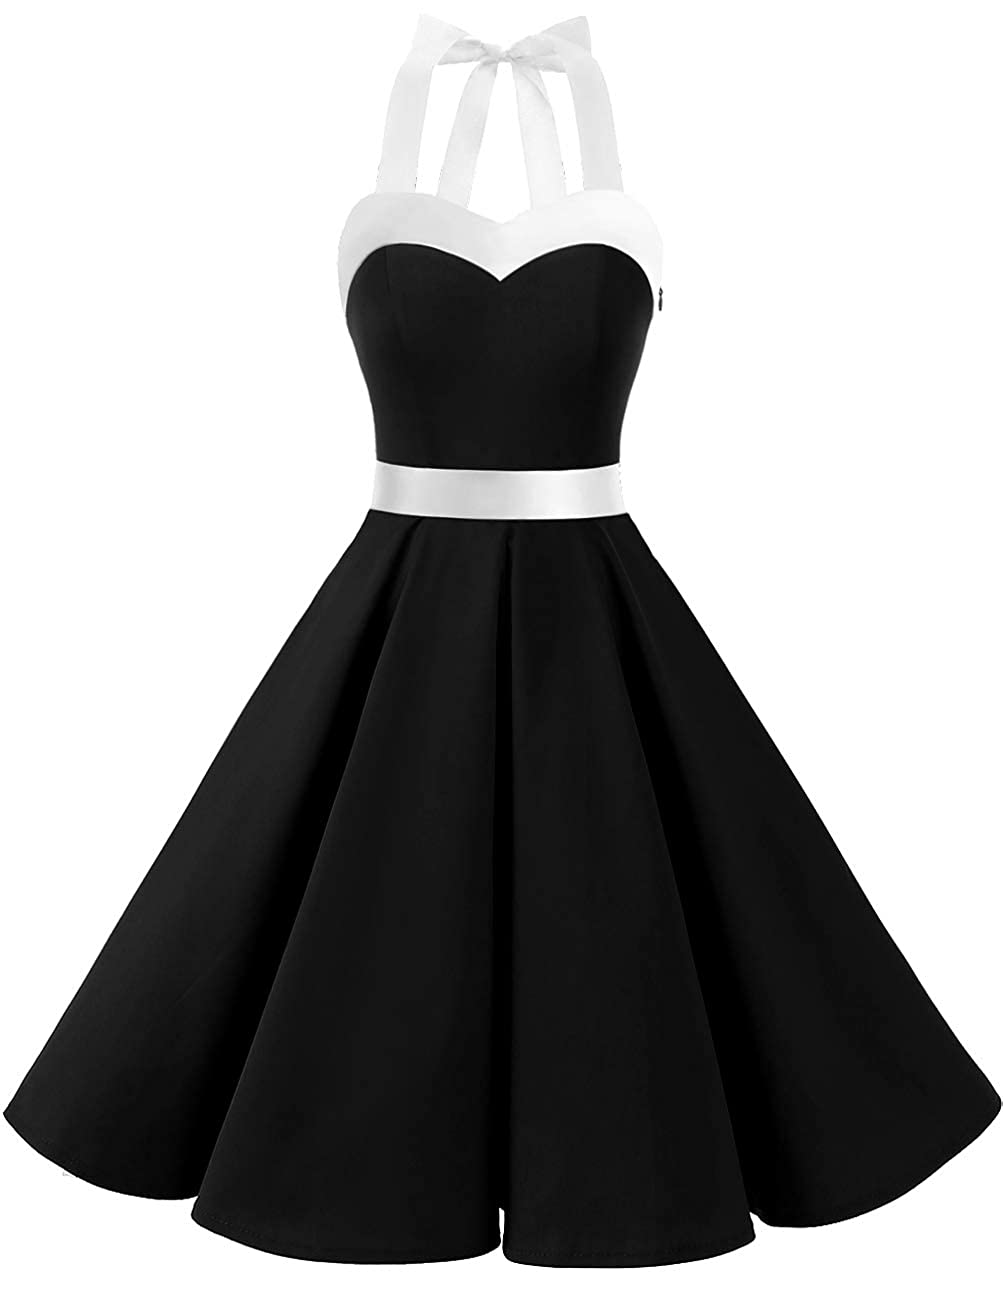 TALLA L. Dresstells® Halter 50s Rockabilly Polka Dots Audrey Dress Retro Cocktail Dress Black White L